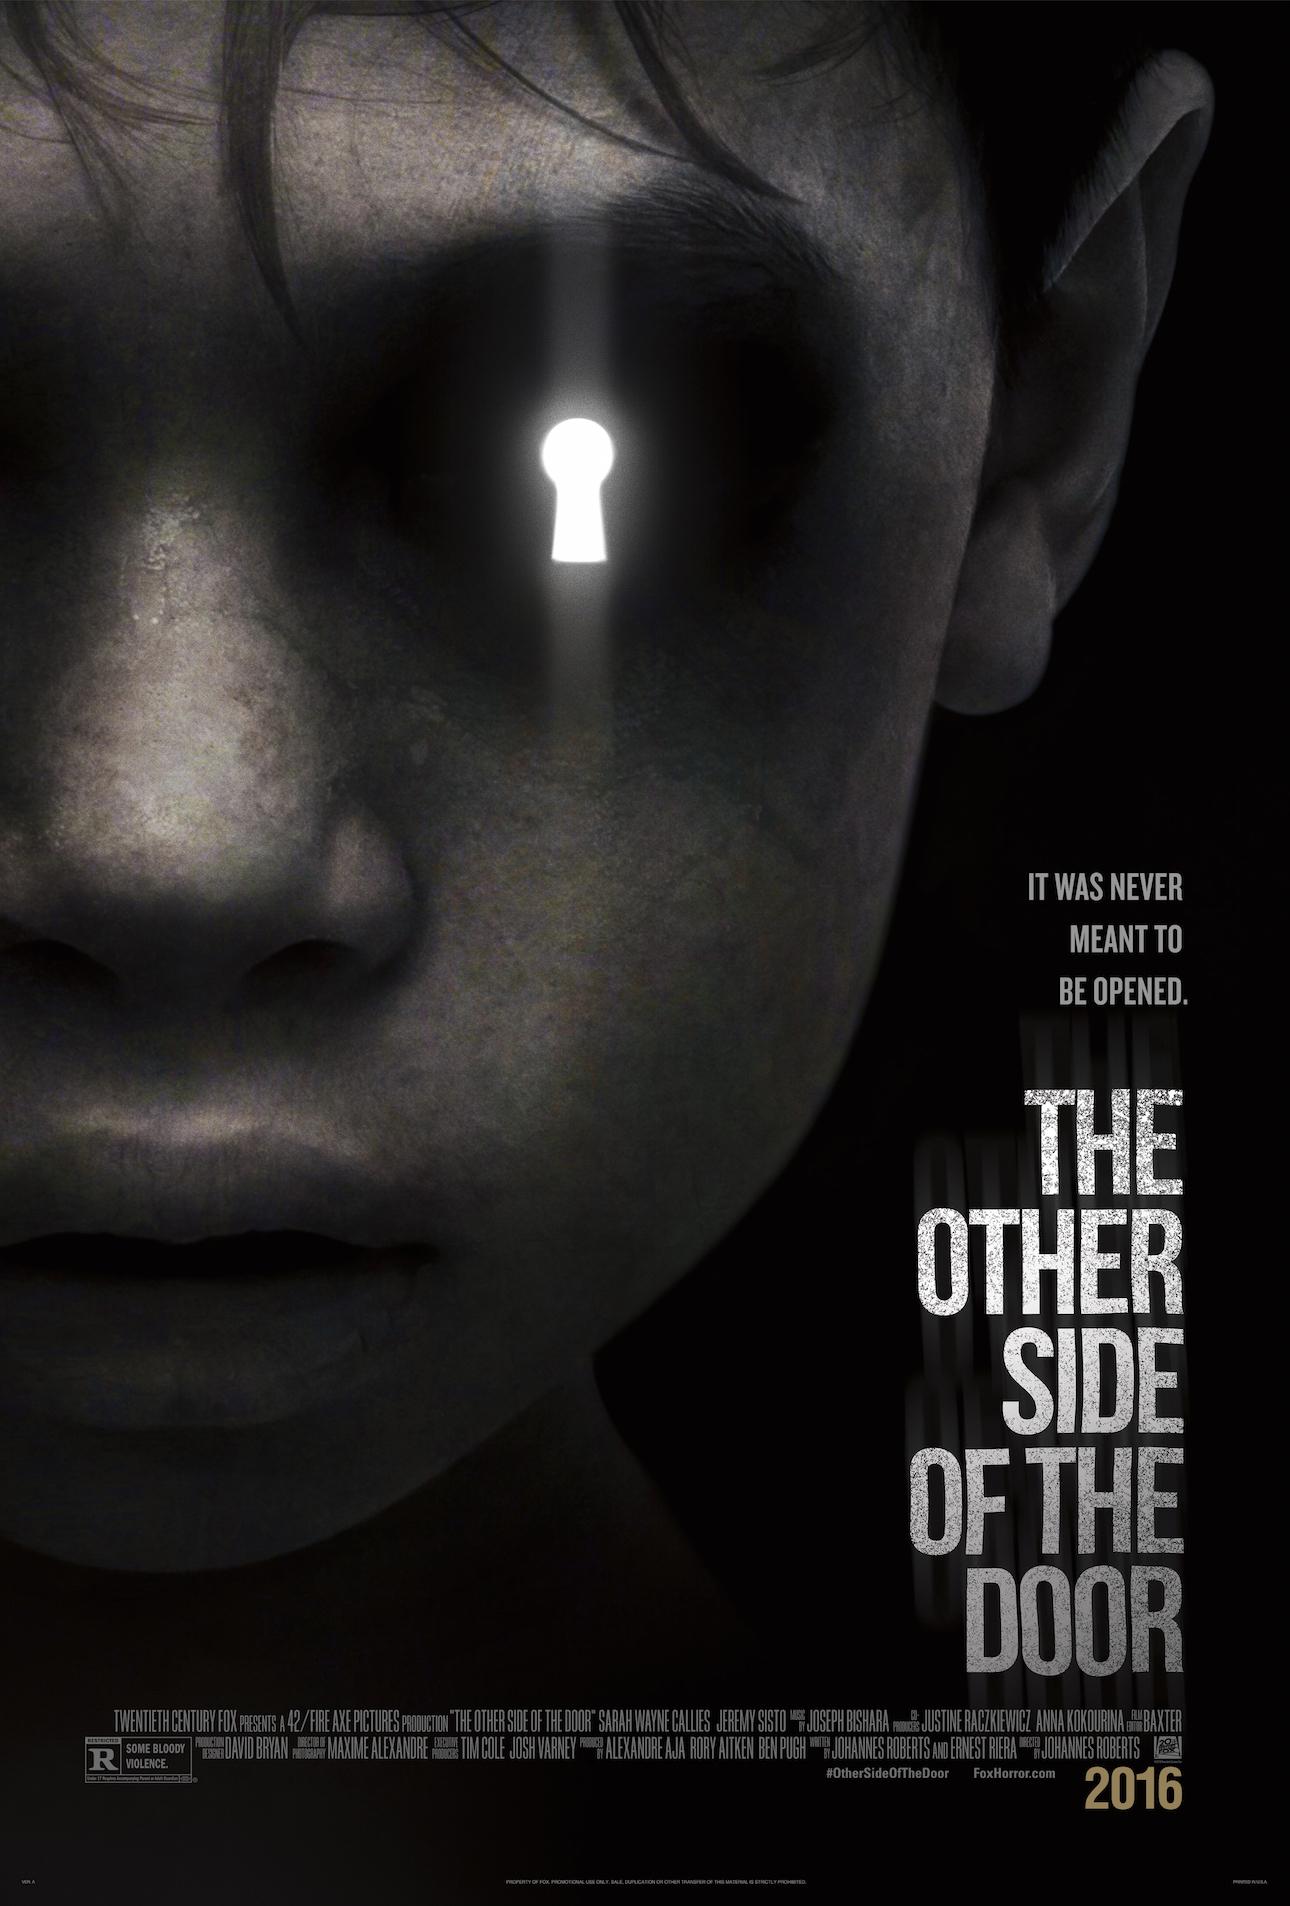 The Other Side of the Door - Poster